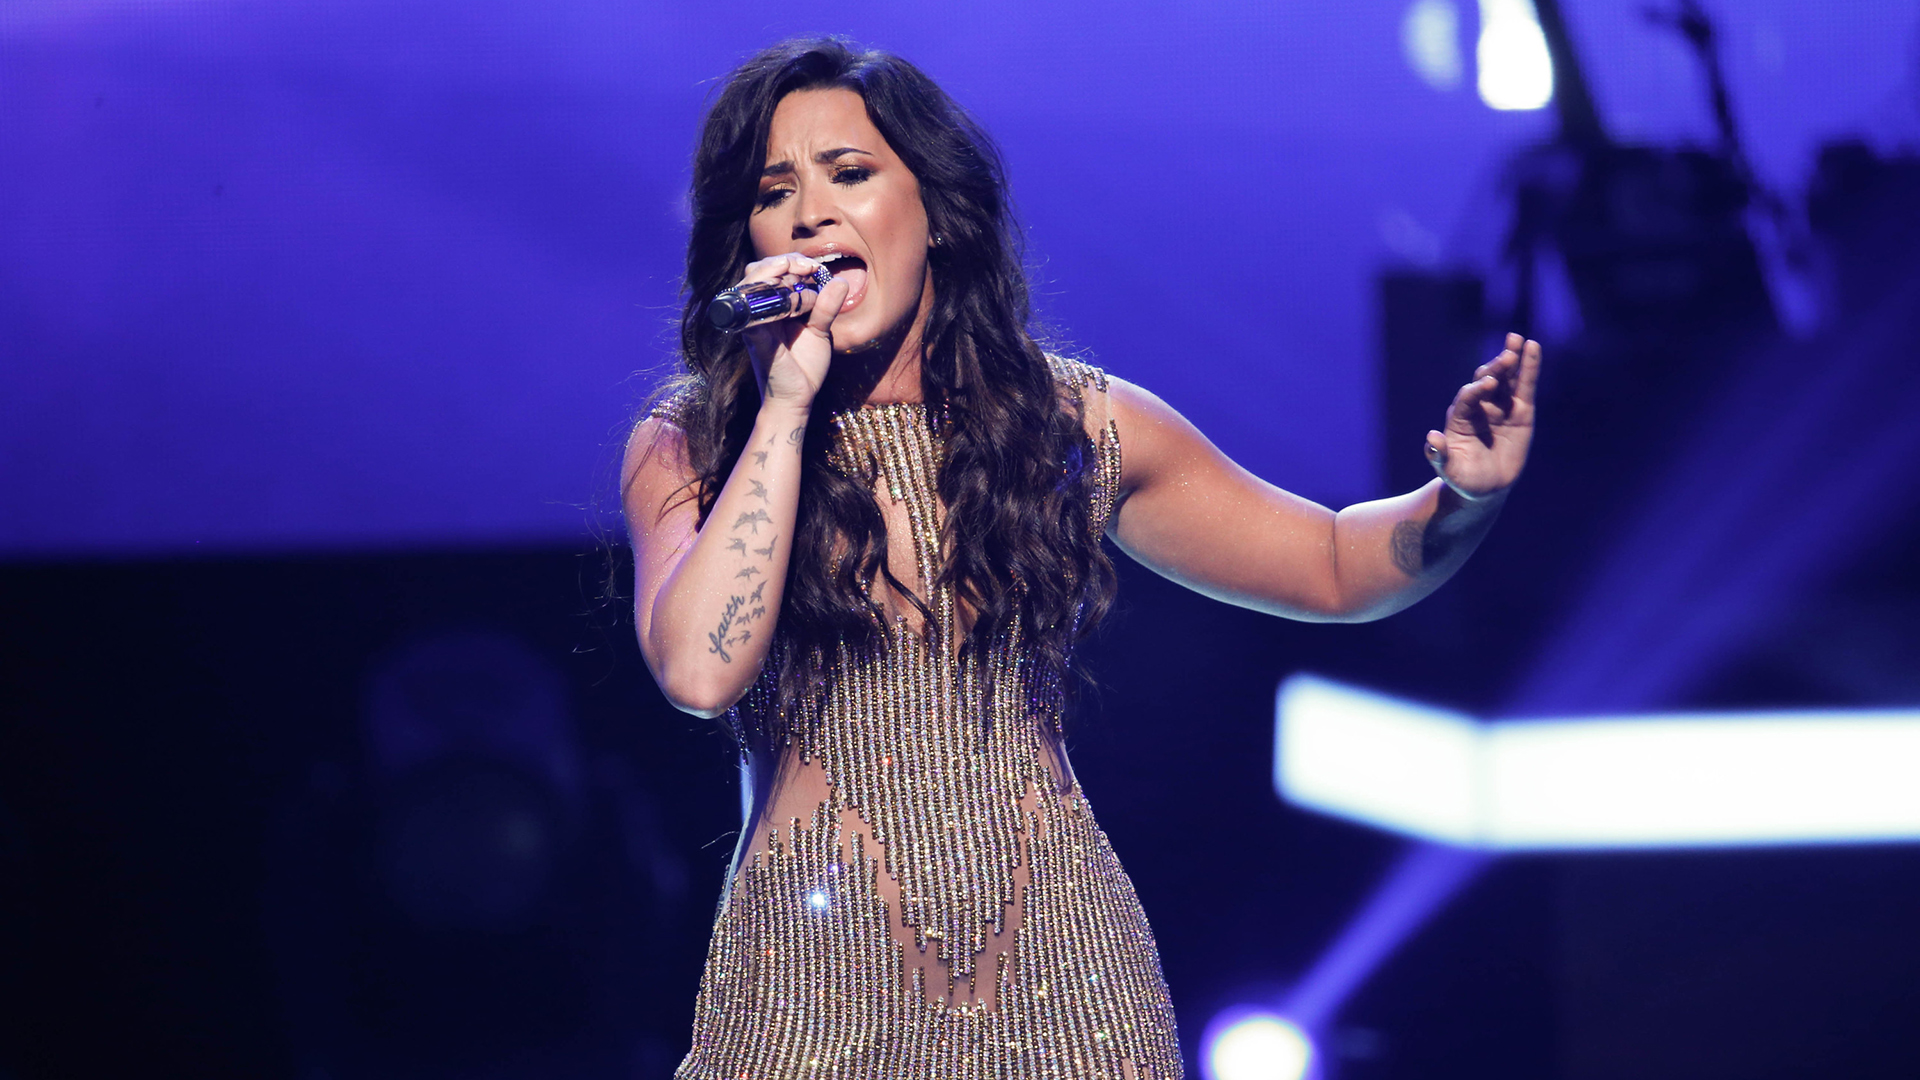 Demi Lovato performs